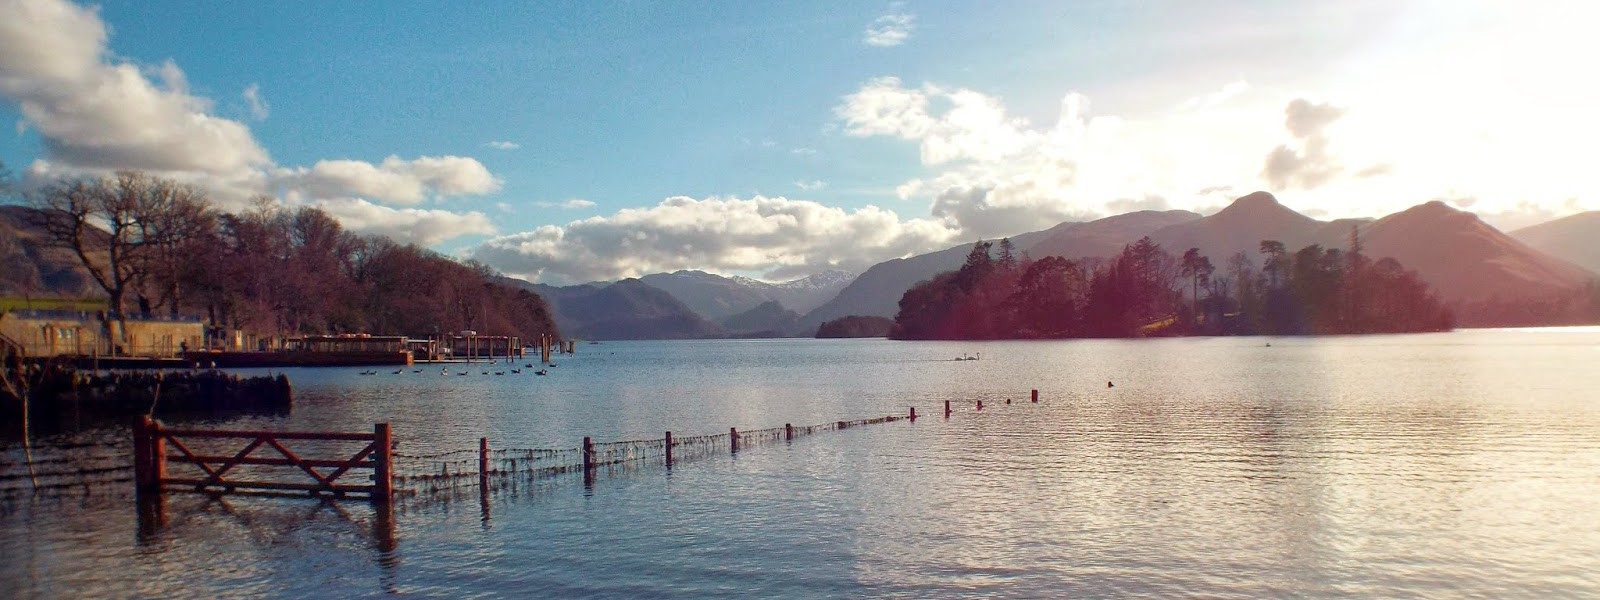 Derwent Water: next to theatre by the lake, Keswick